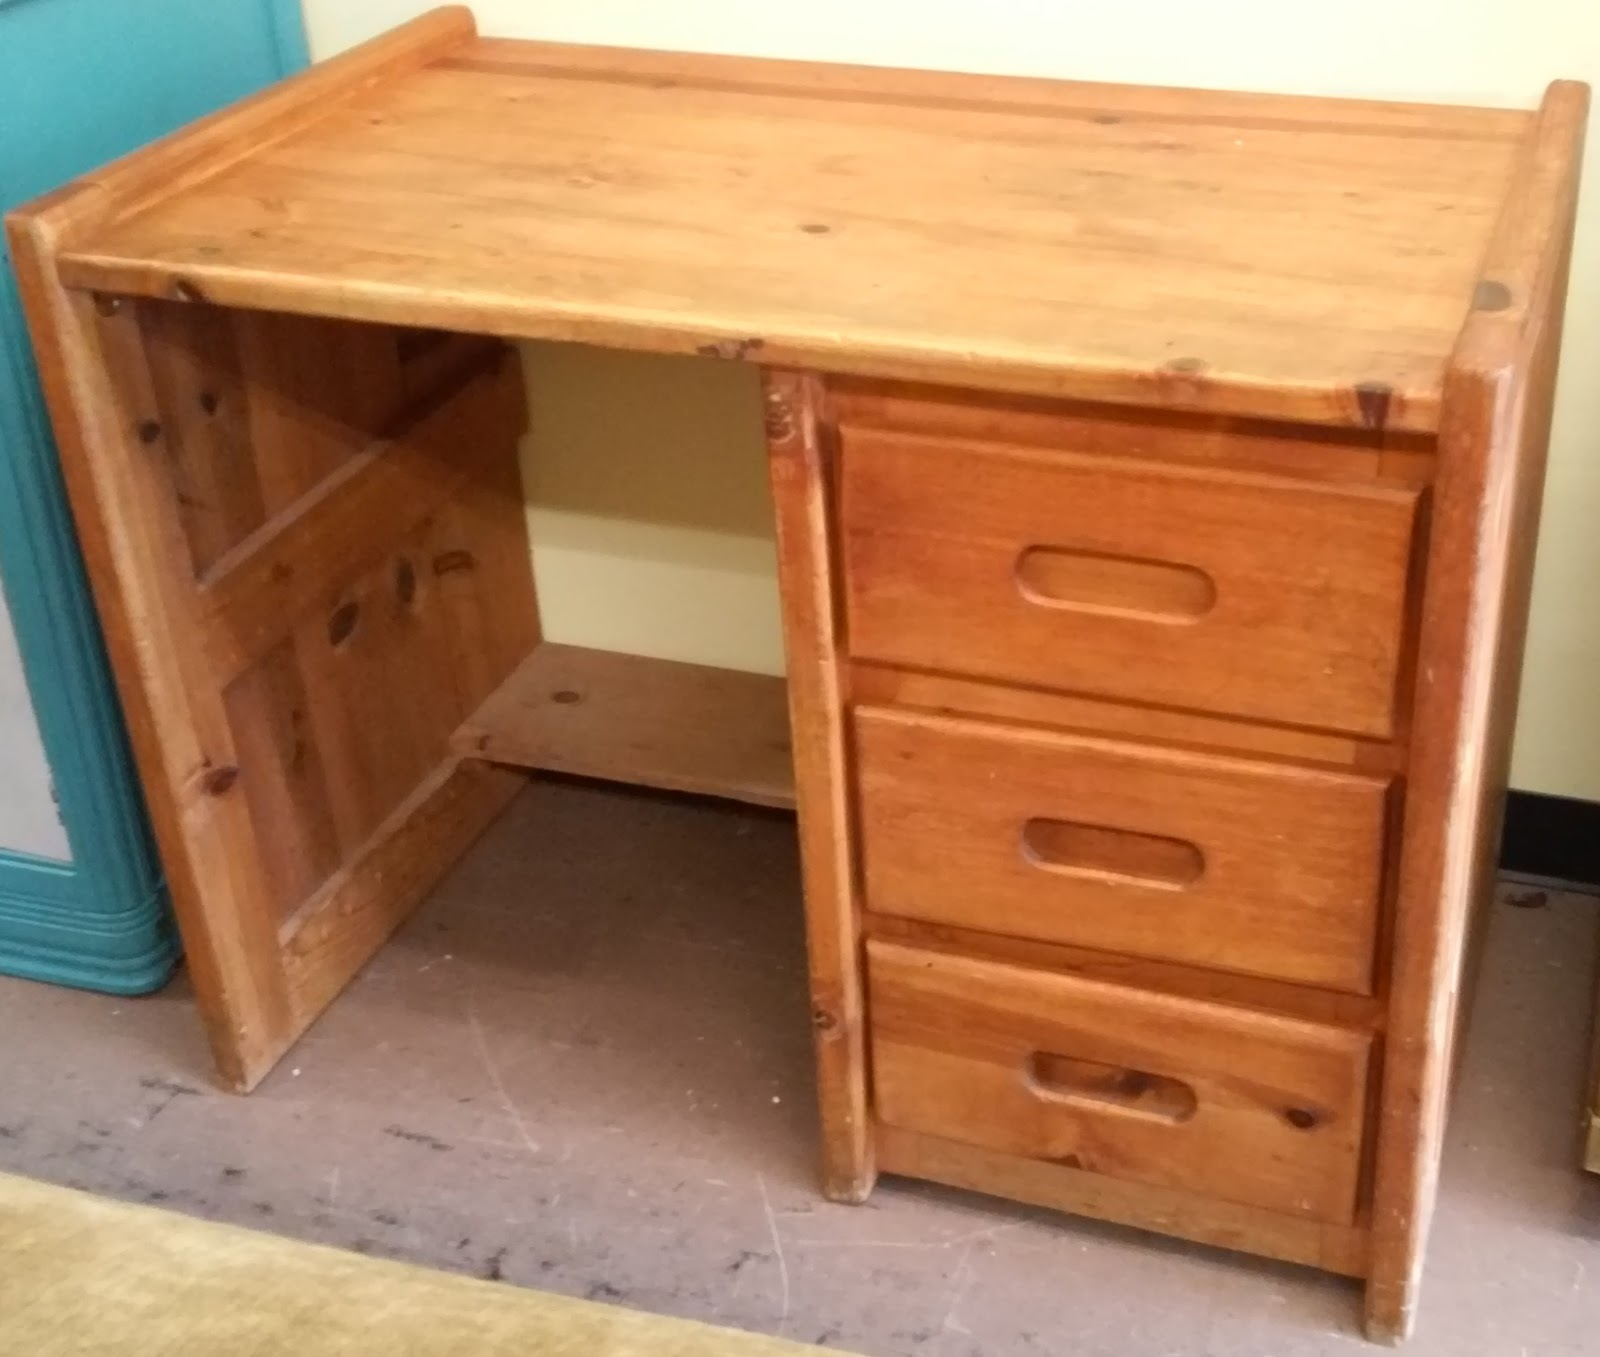 UHURU FURNITURE  COLLECTIBLES sold 40 Wide Knotty Pine